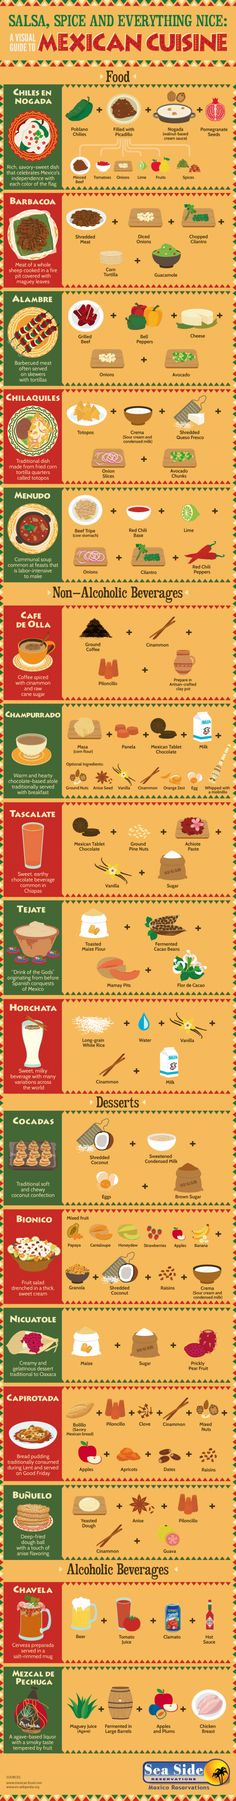 A Visual Guide to Mexican Cuisine: Sugar, Spice and Everything Nice #Infographics